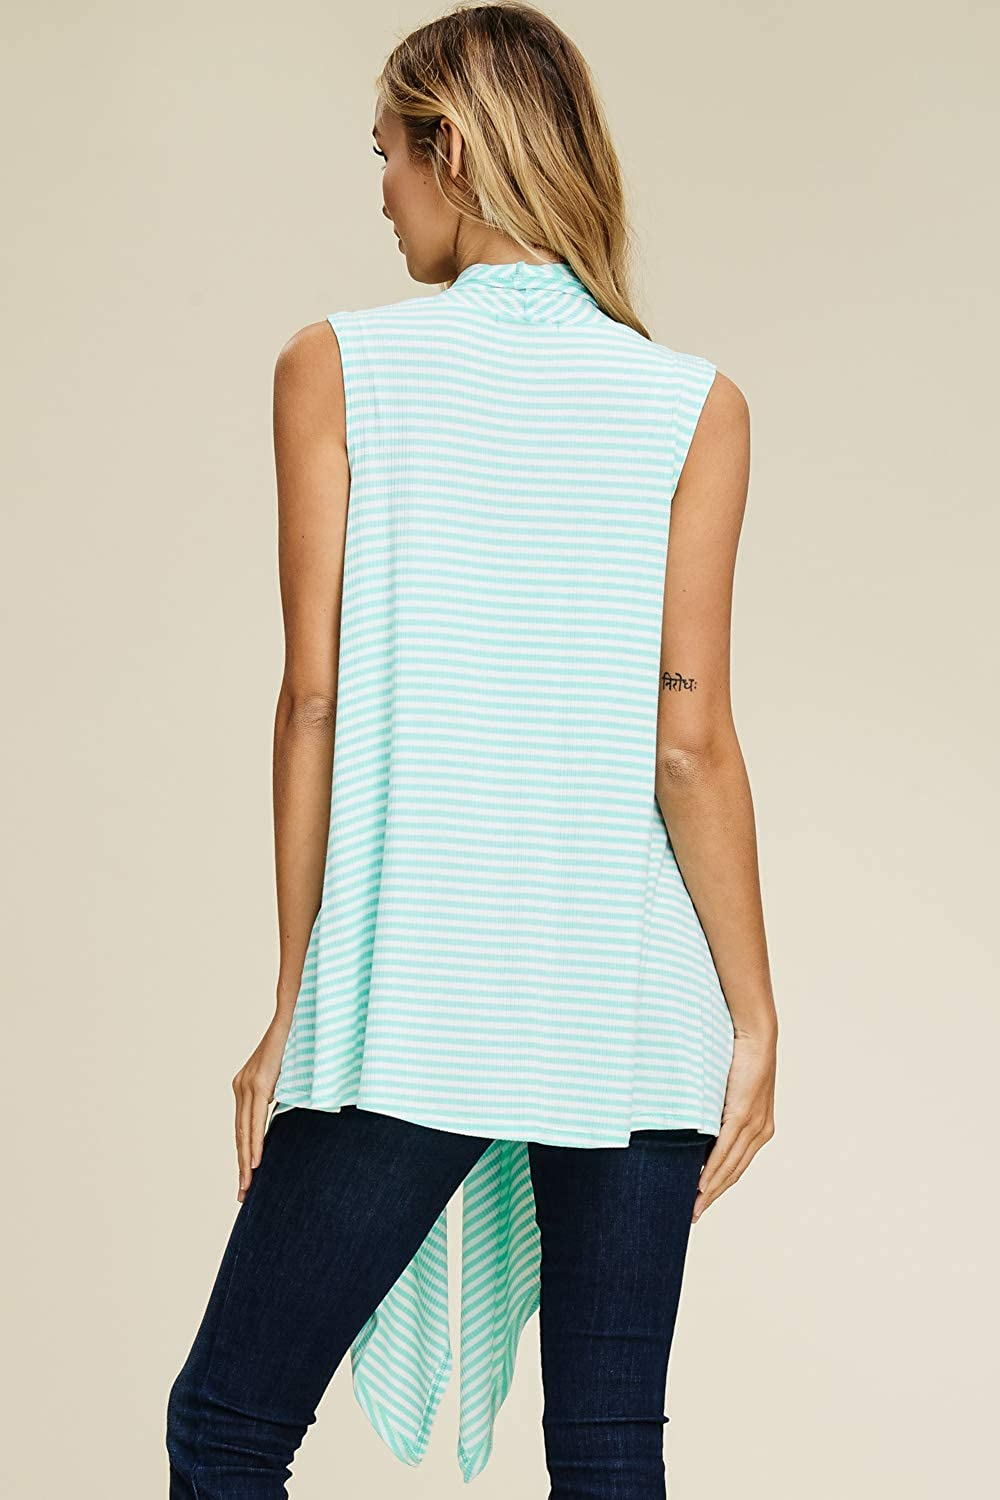 Annabelle Womens Draped Vest Knit Sleeveless Cardigan with Side Pockets